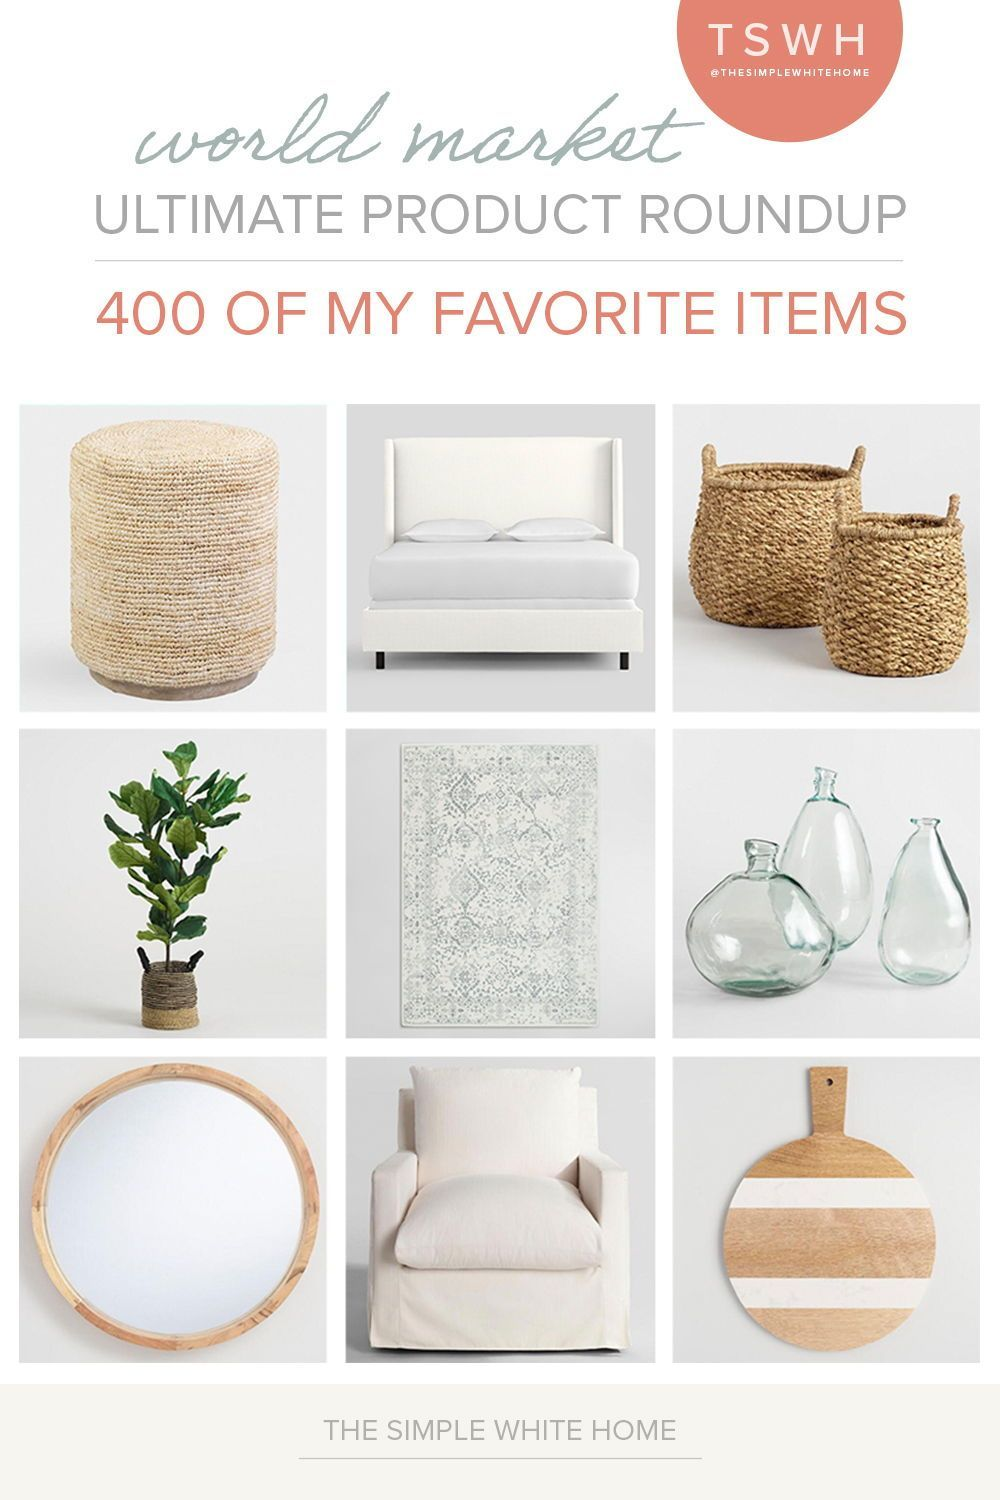 World Market is one of my favorite stores for all things home. They have great pieces and they usually work within any budget. I've curated the ultimate roundup with 400 of my favorite items.